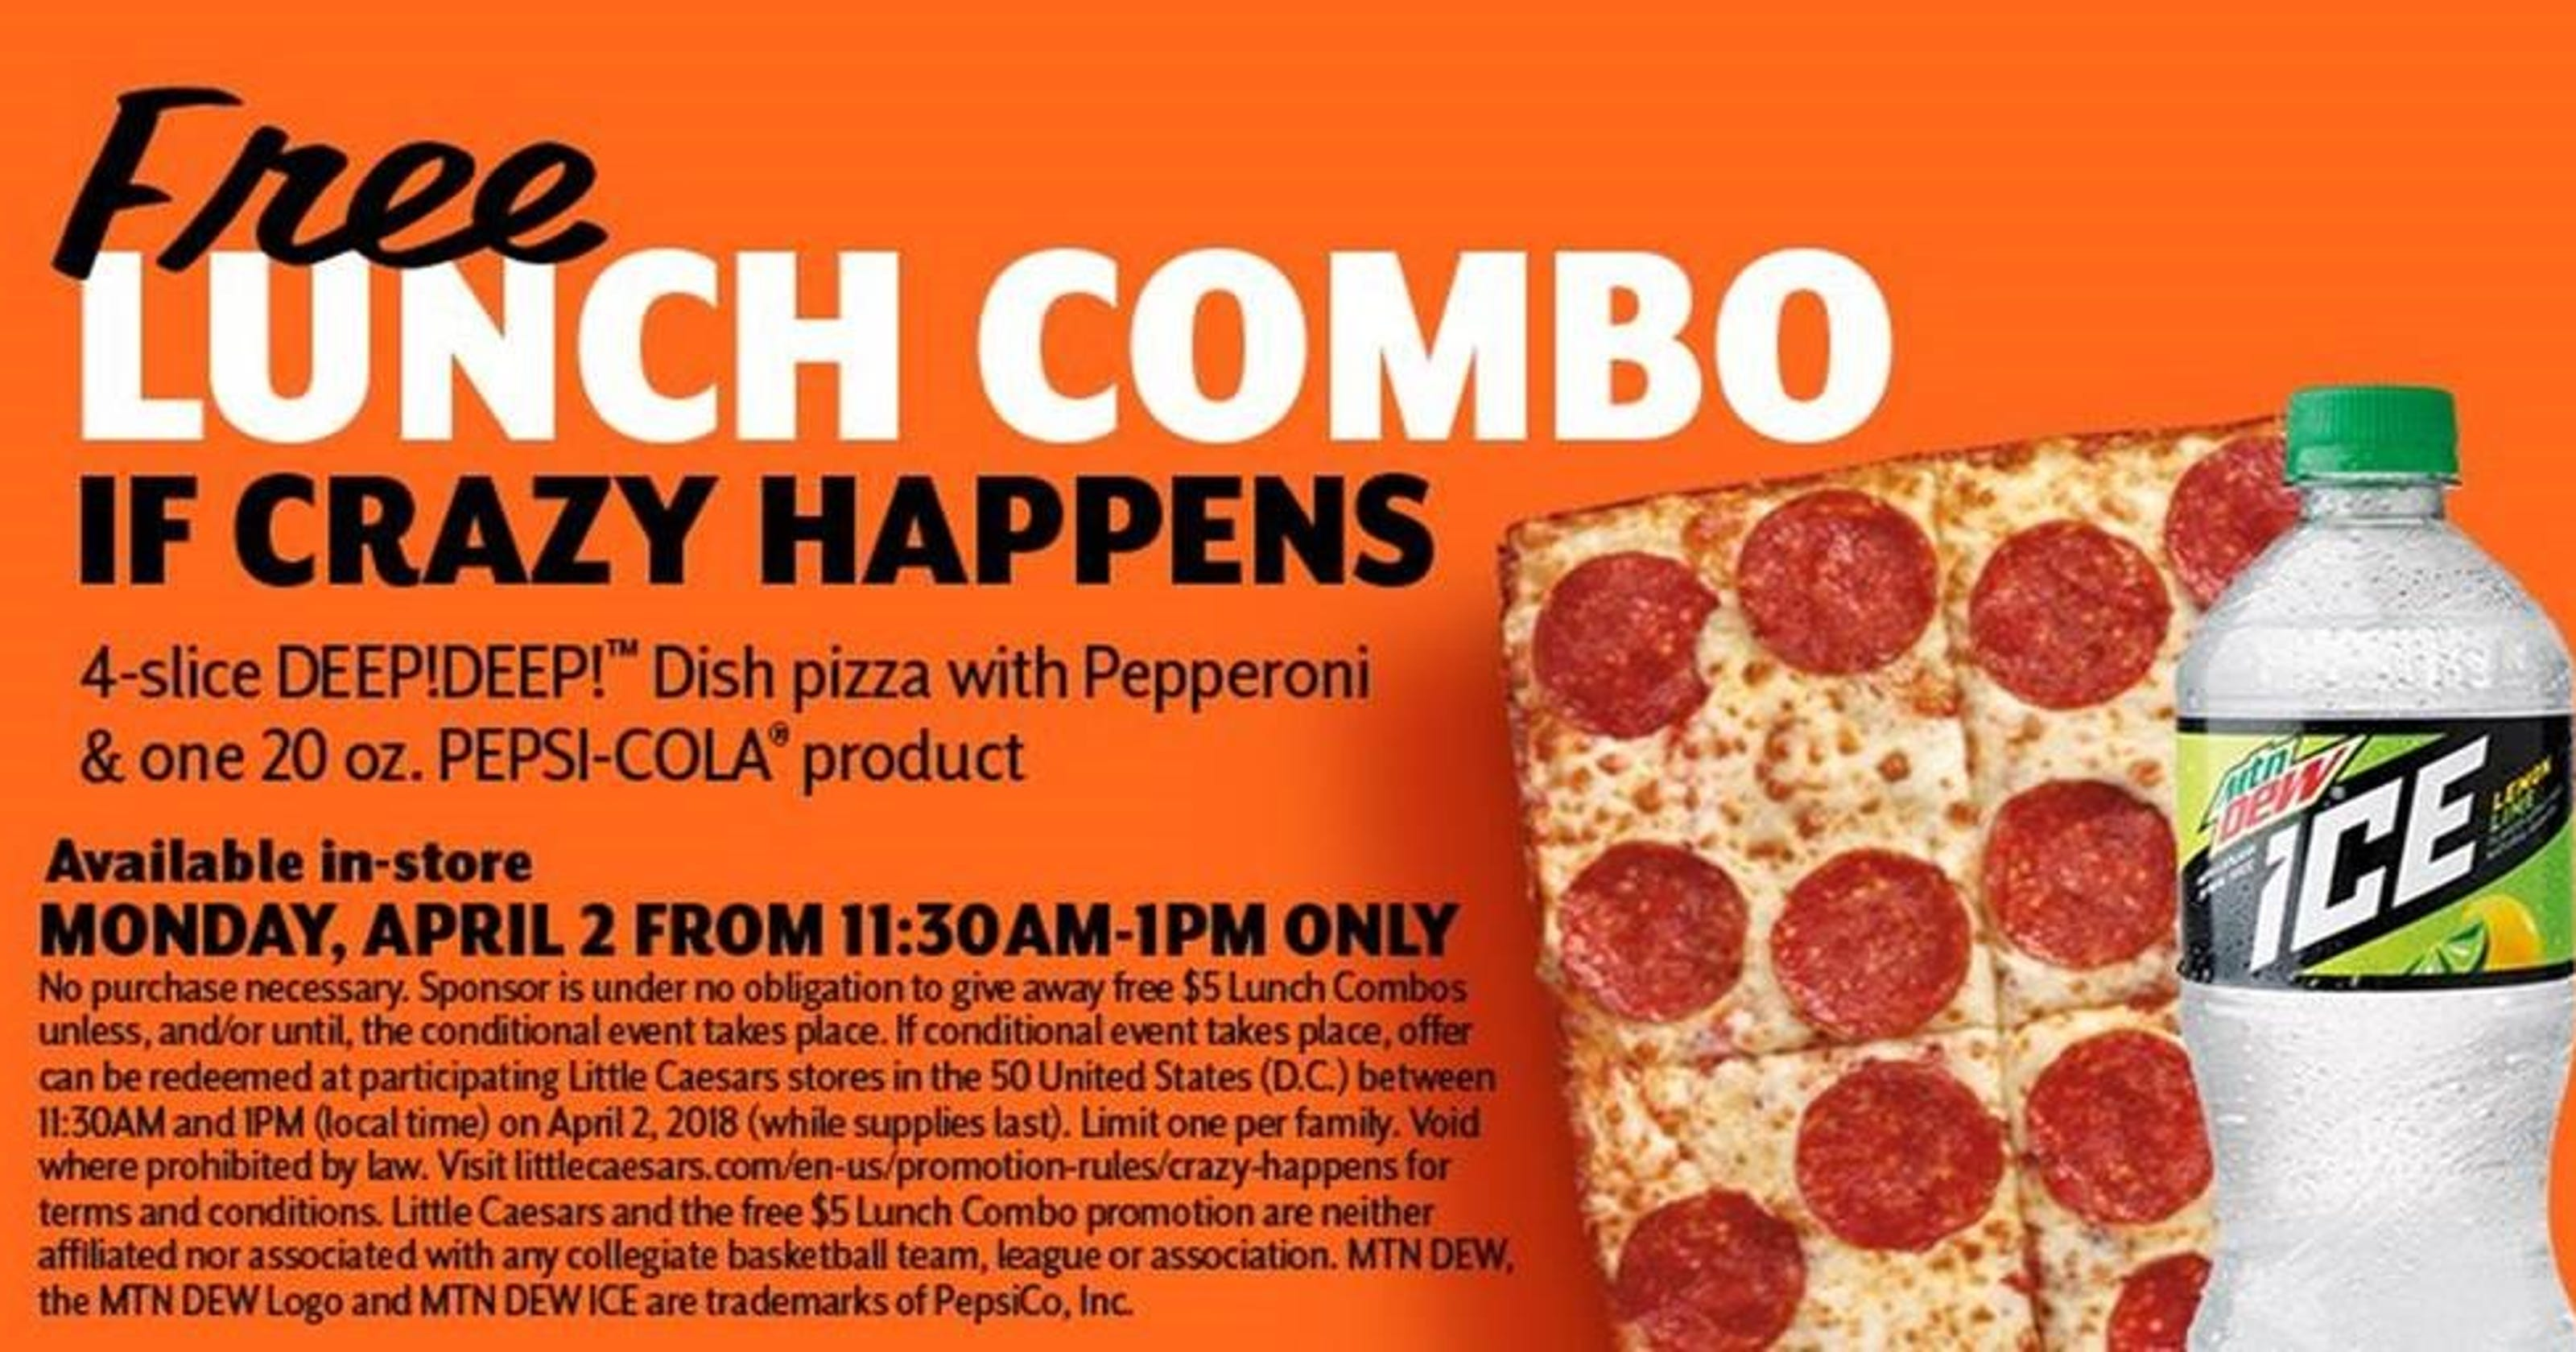 Free Little Caesars Pizza For Everyone After Ncaa Upset What To Know